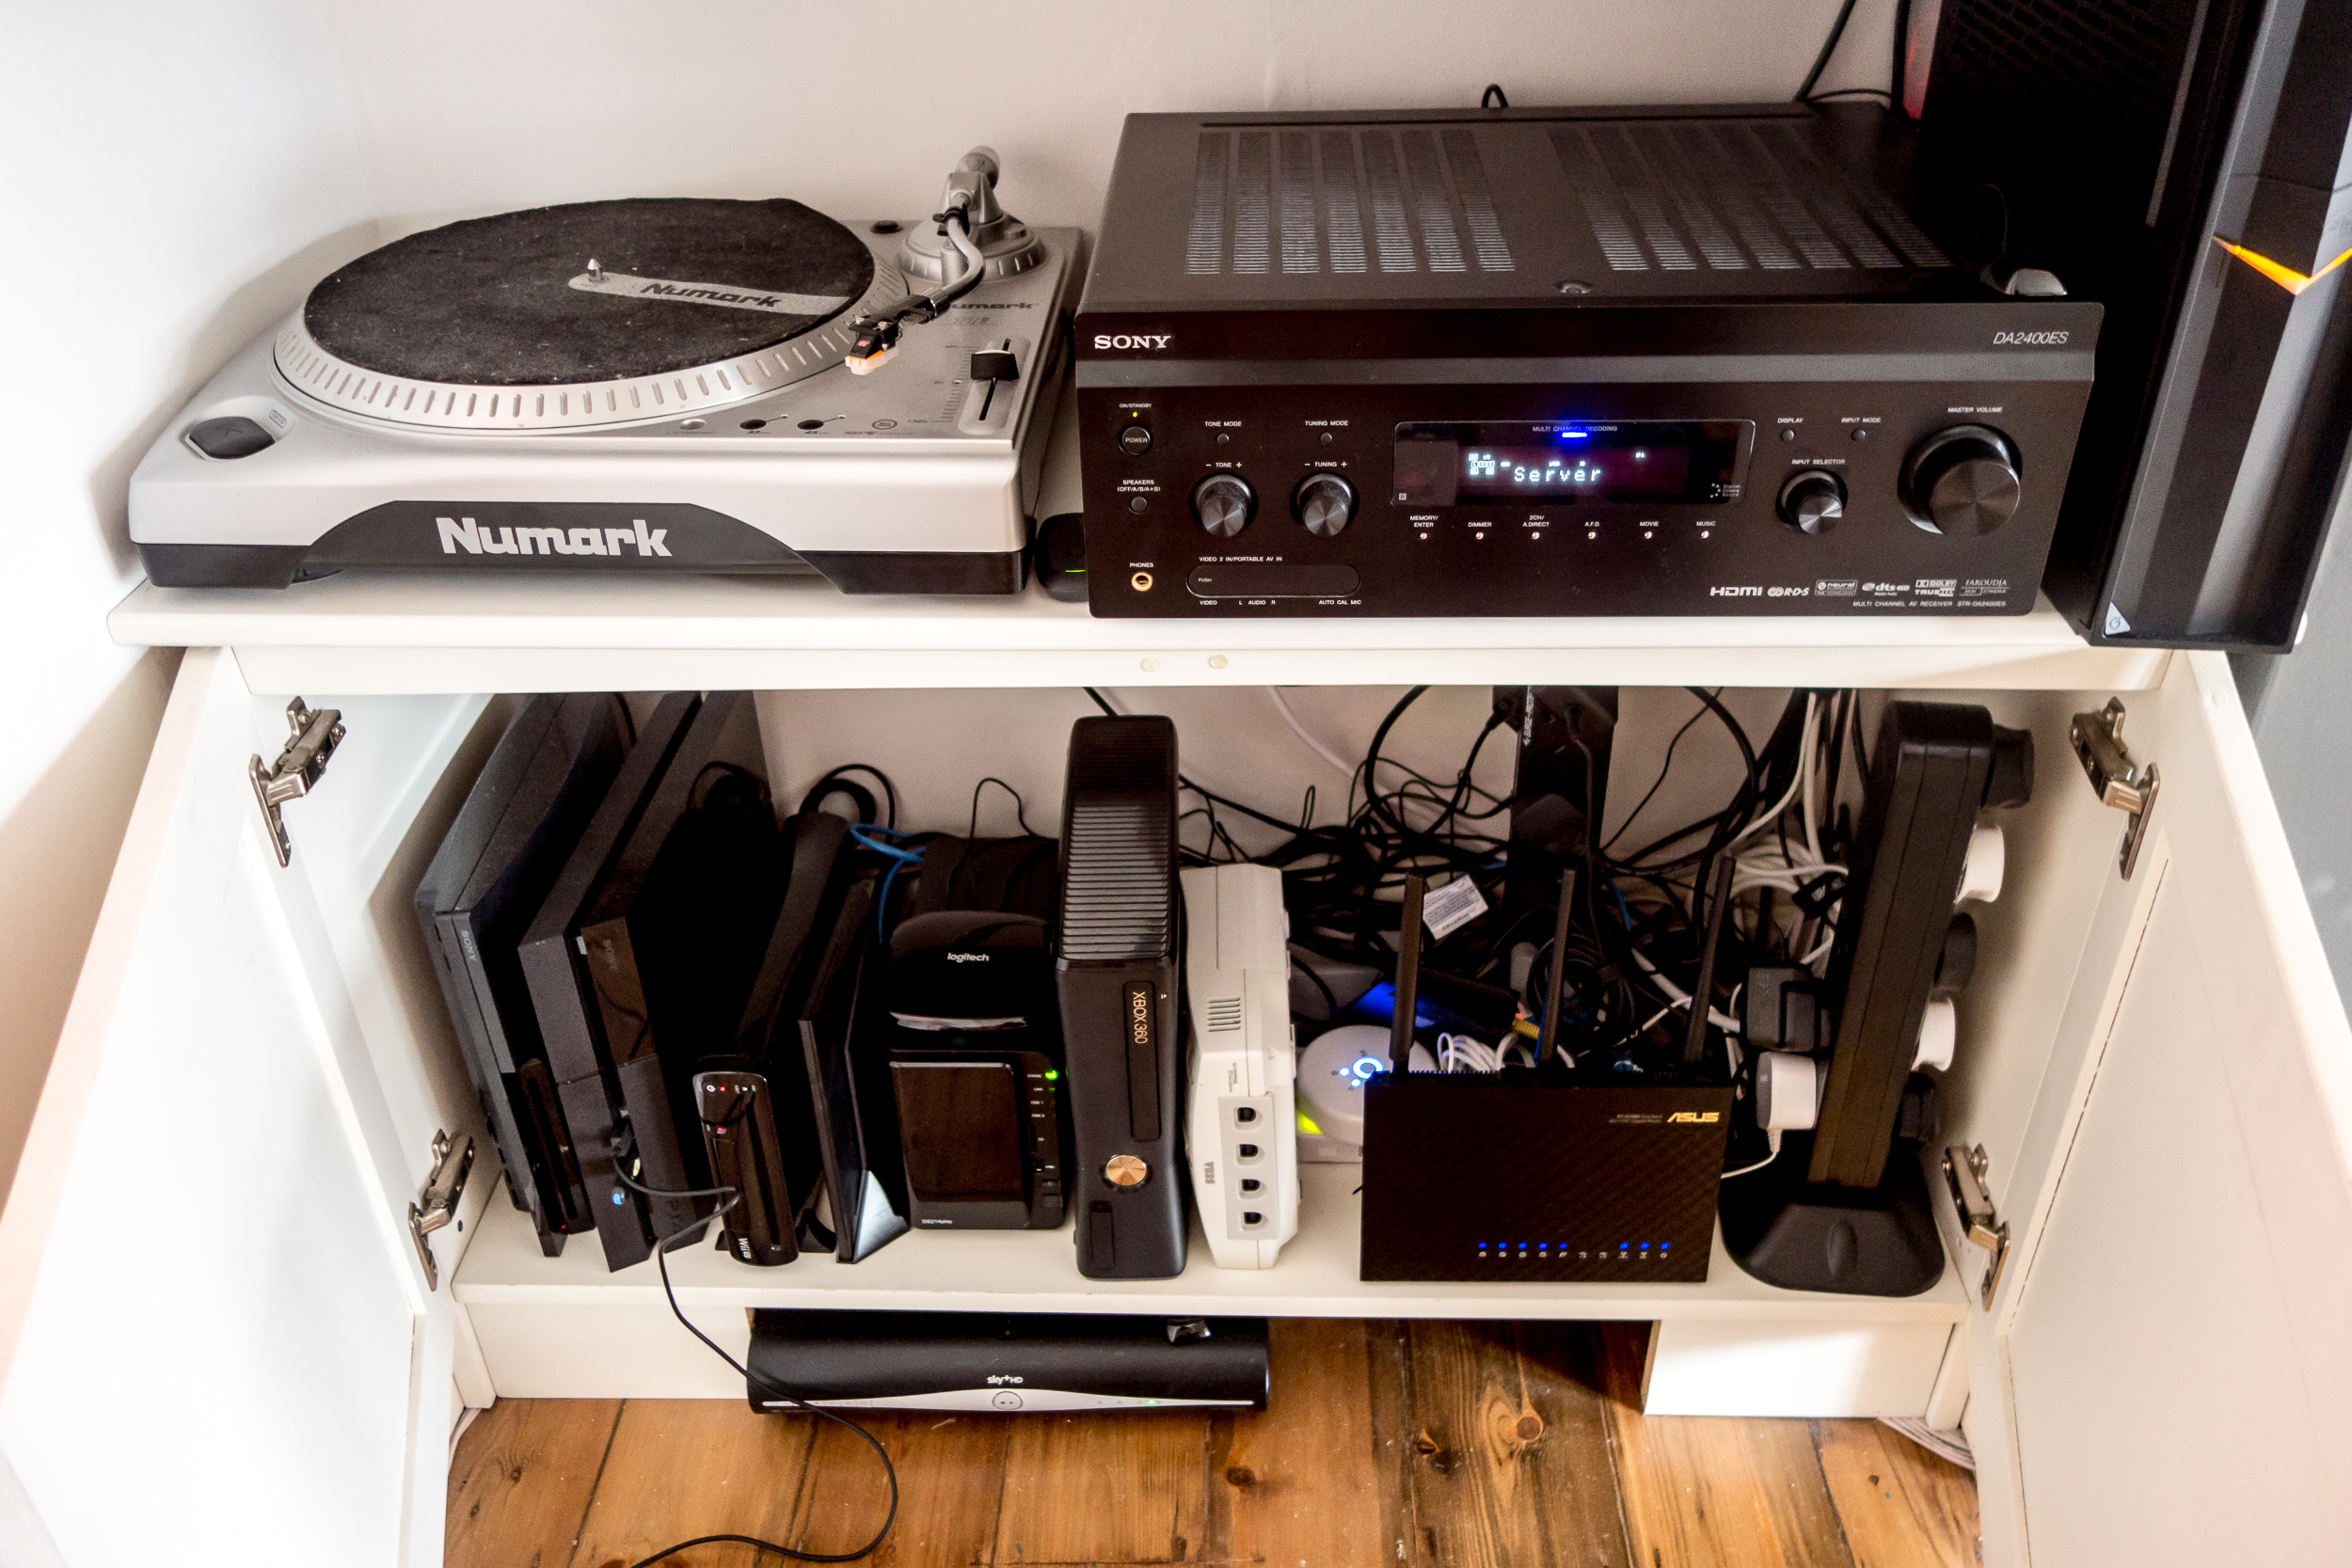 The Harmony works wonders for controlling this lot, but sadly does little for cable management.